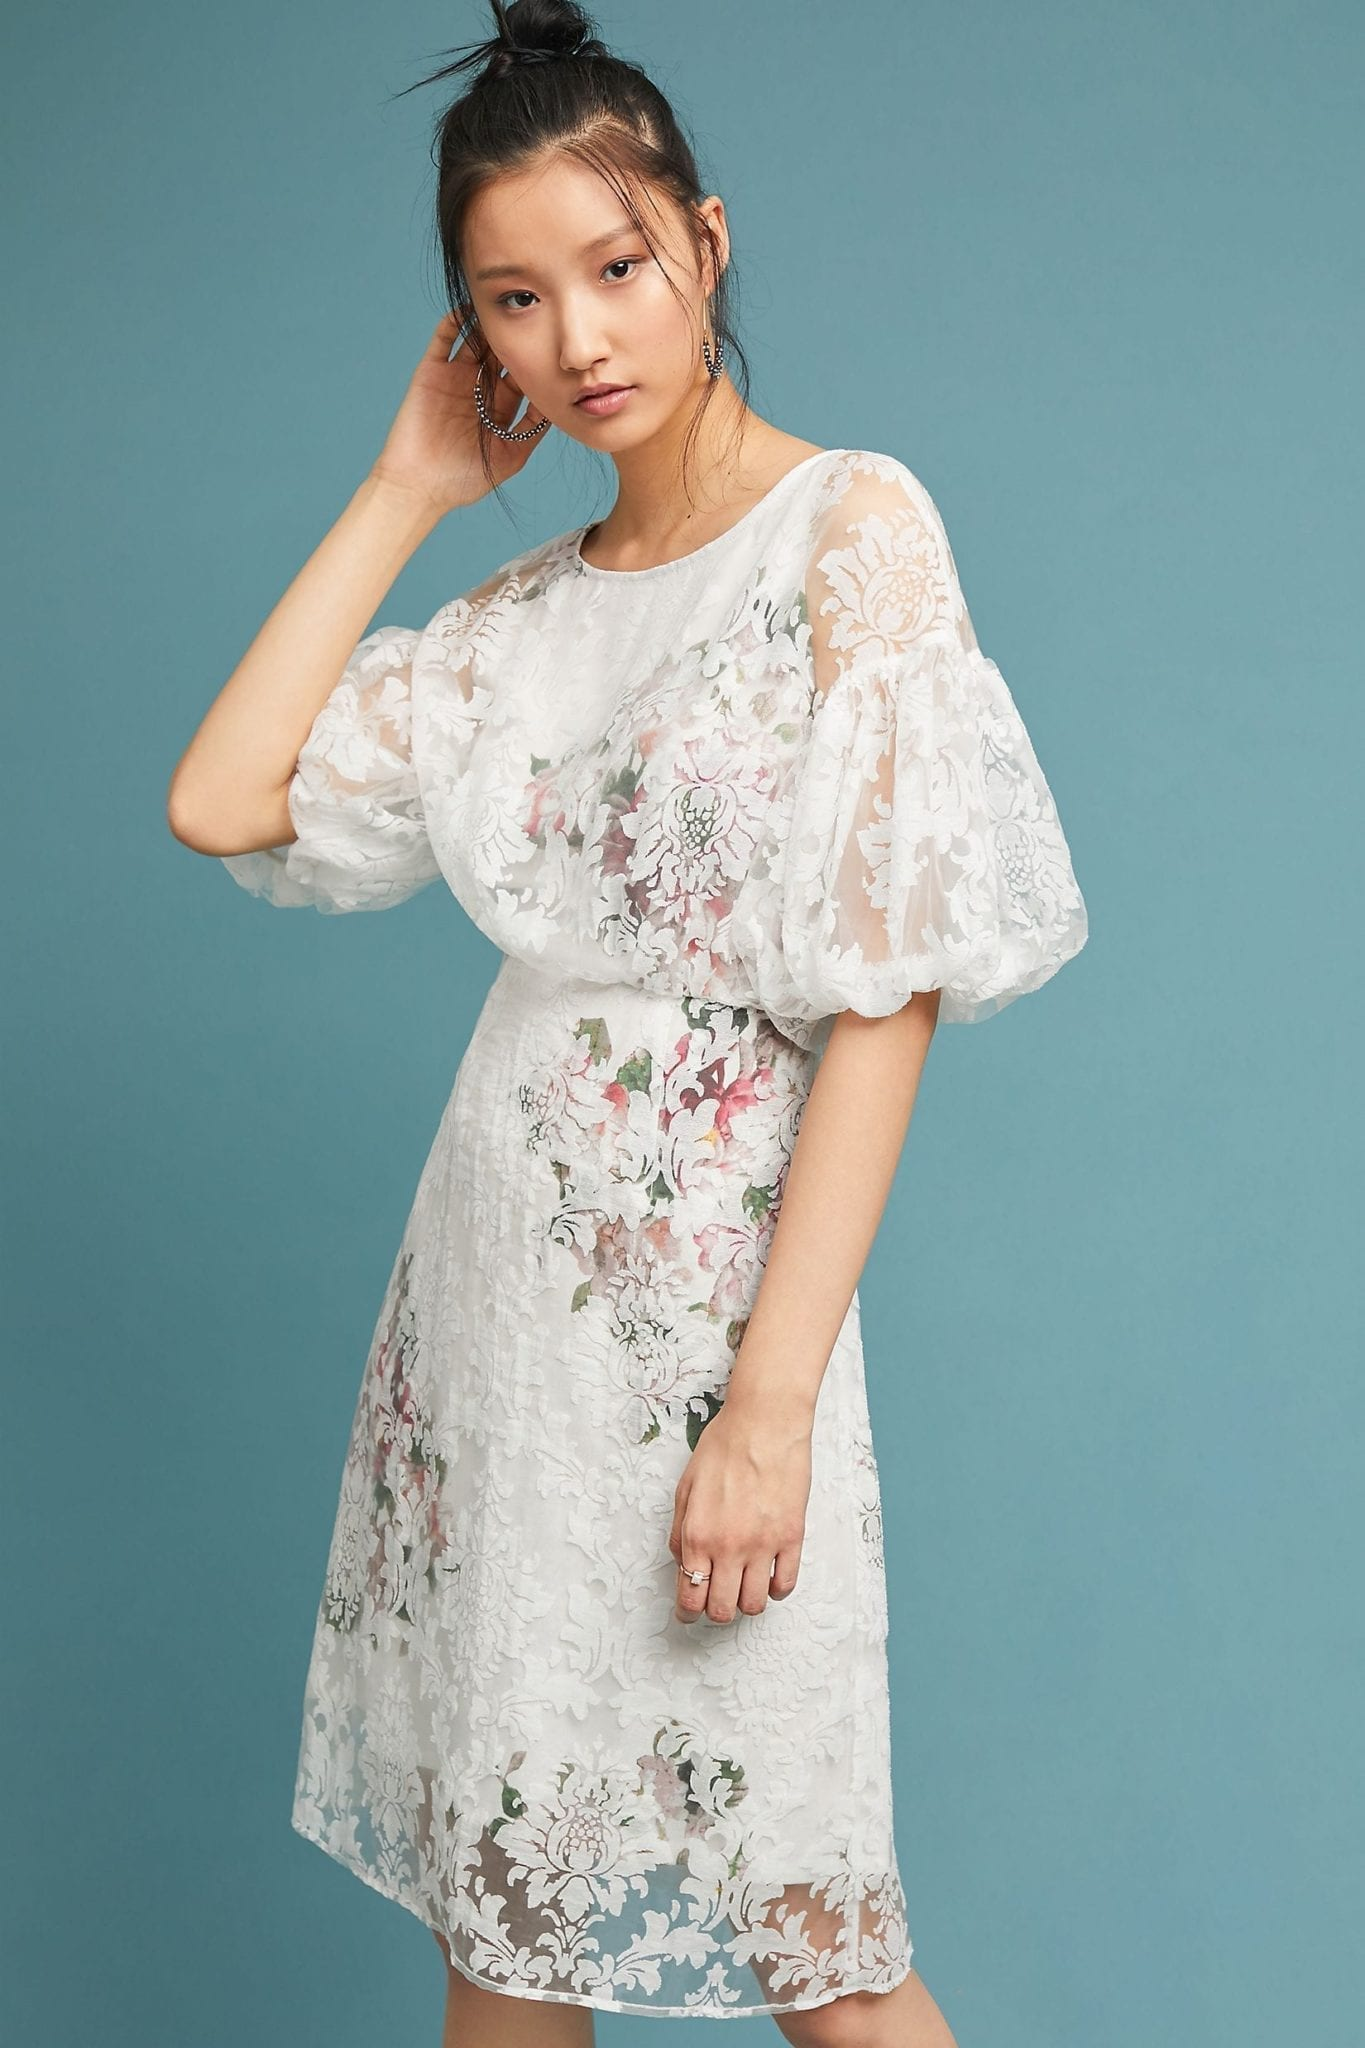 TRACY REESE X ANTHROPOLOGIE Guiana Neutral / Floral Dress